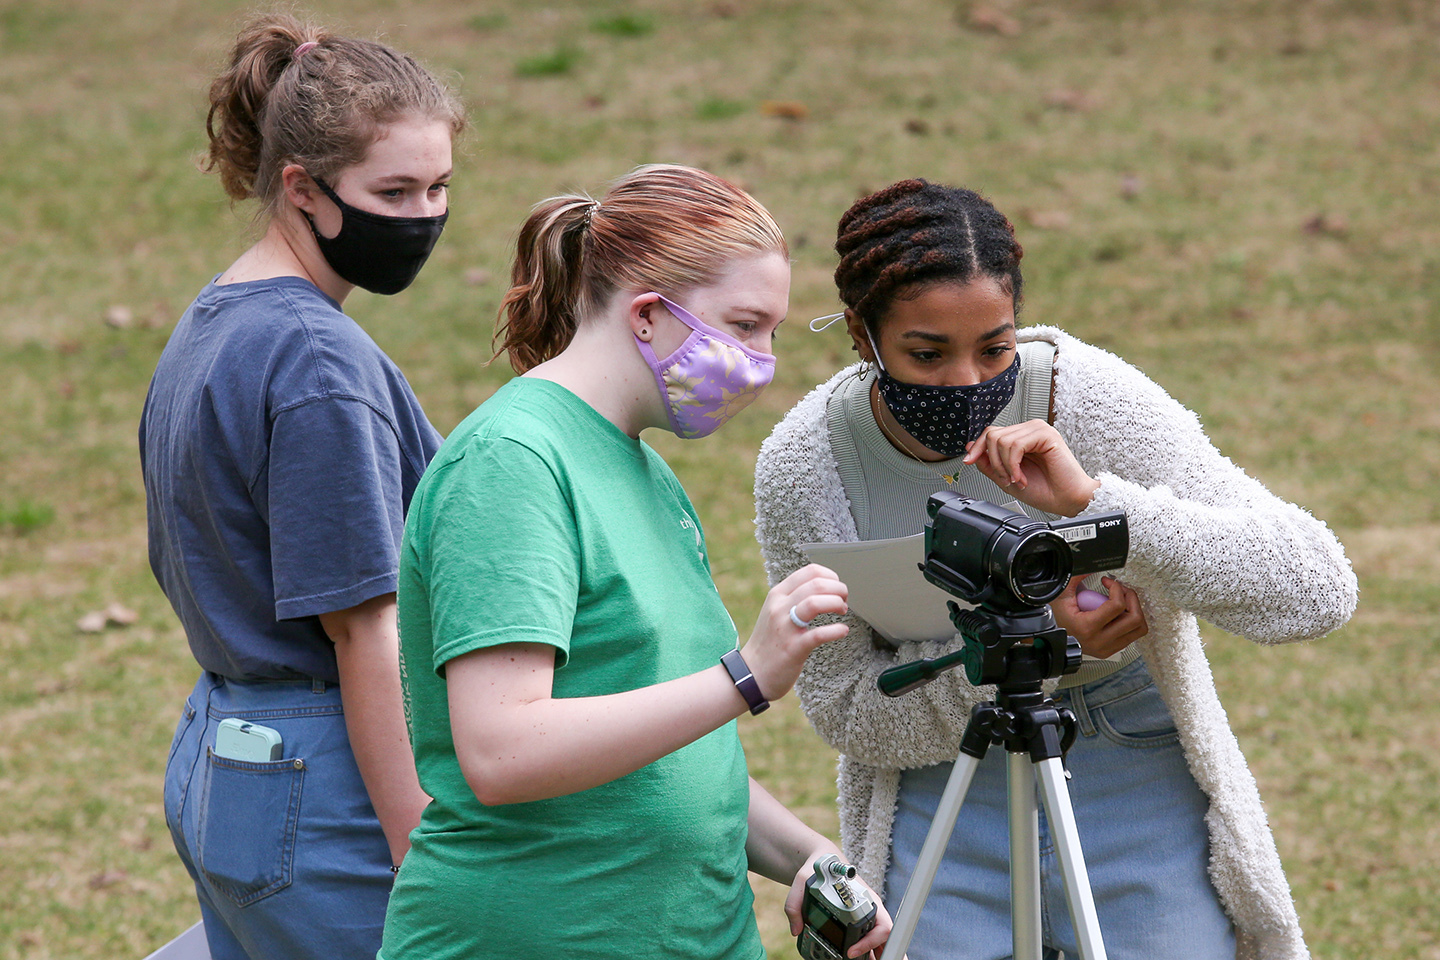 Three masked students looking at a video camera on a tripod